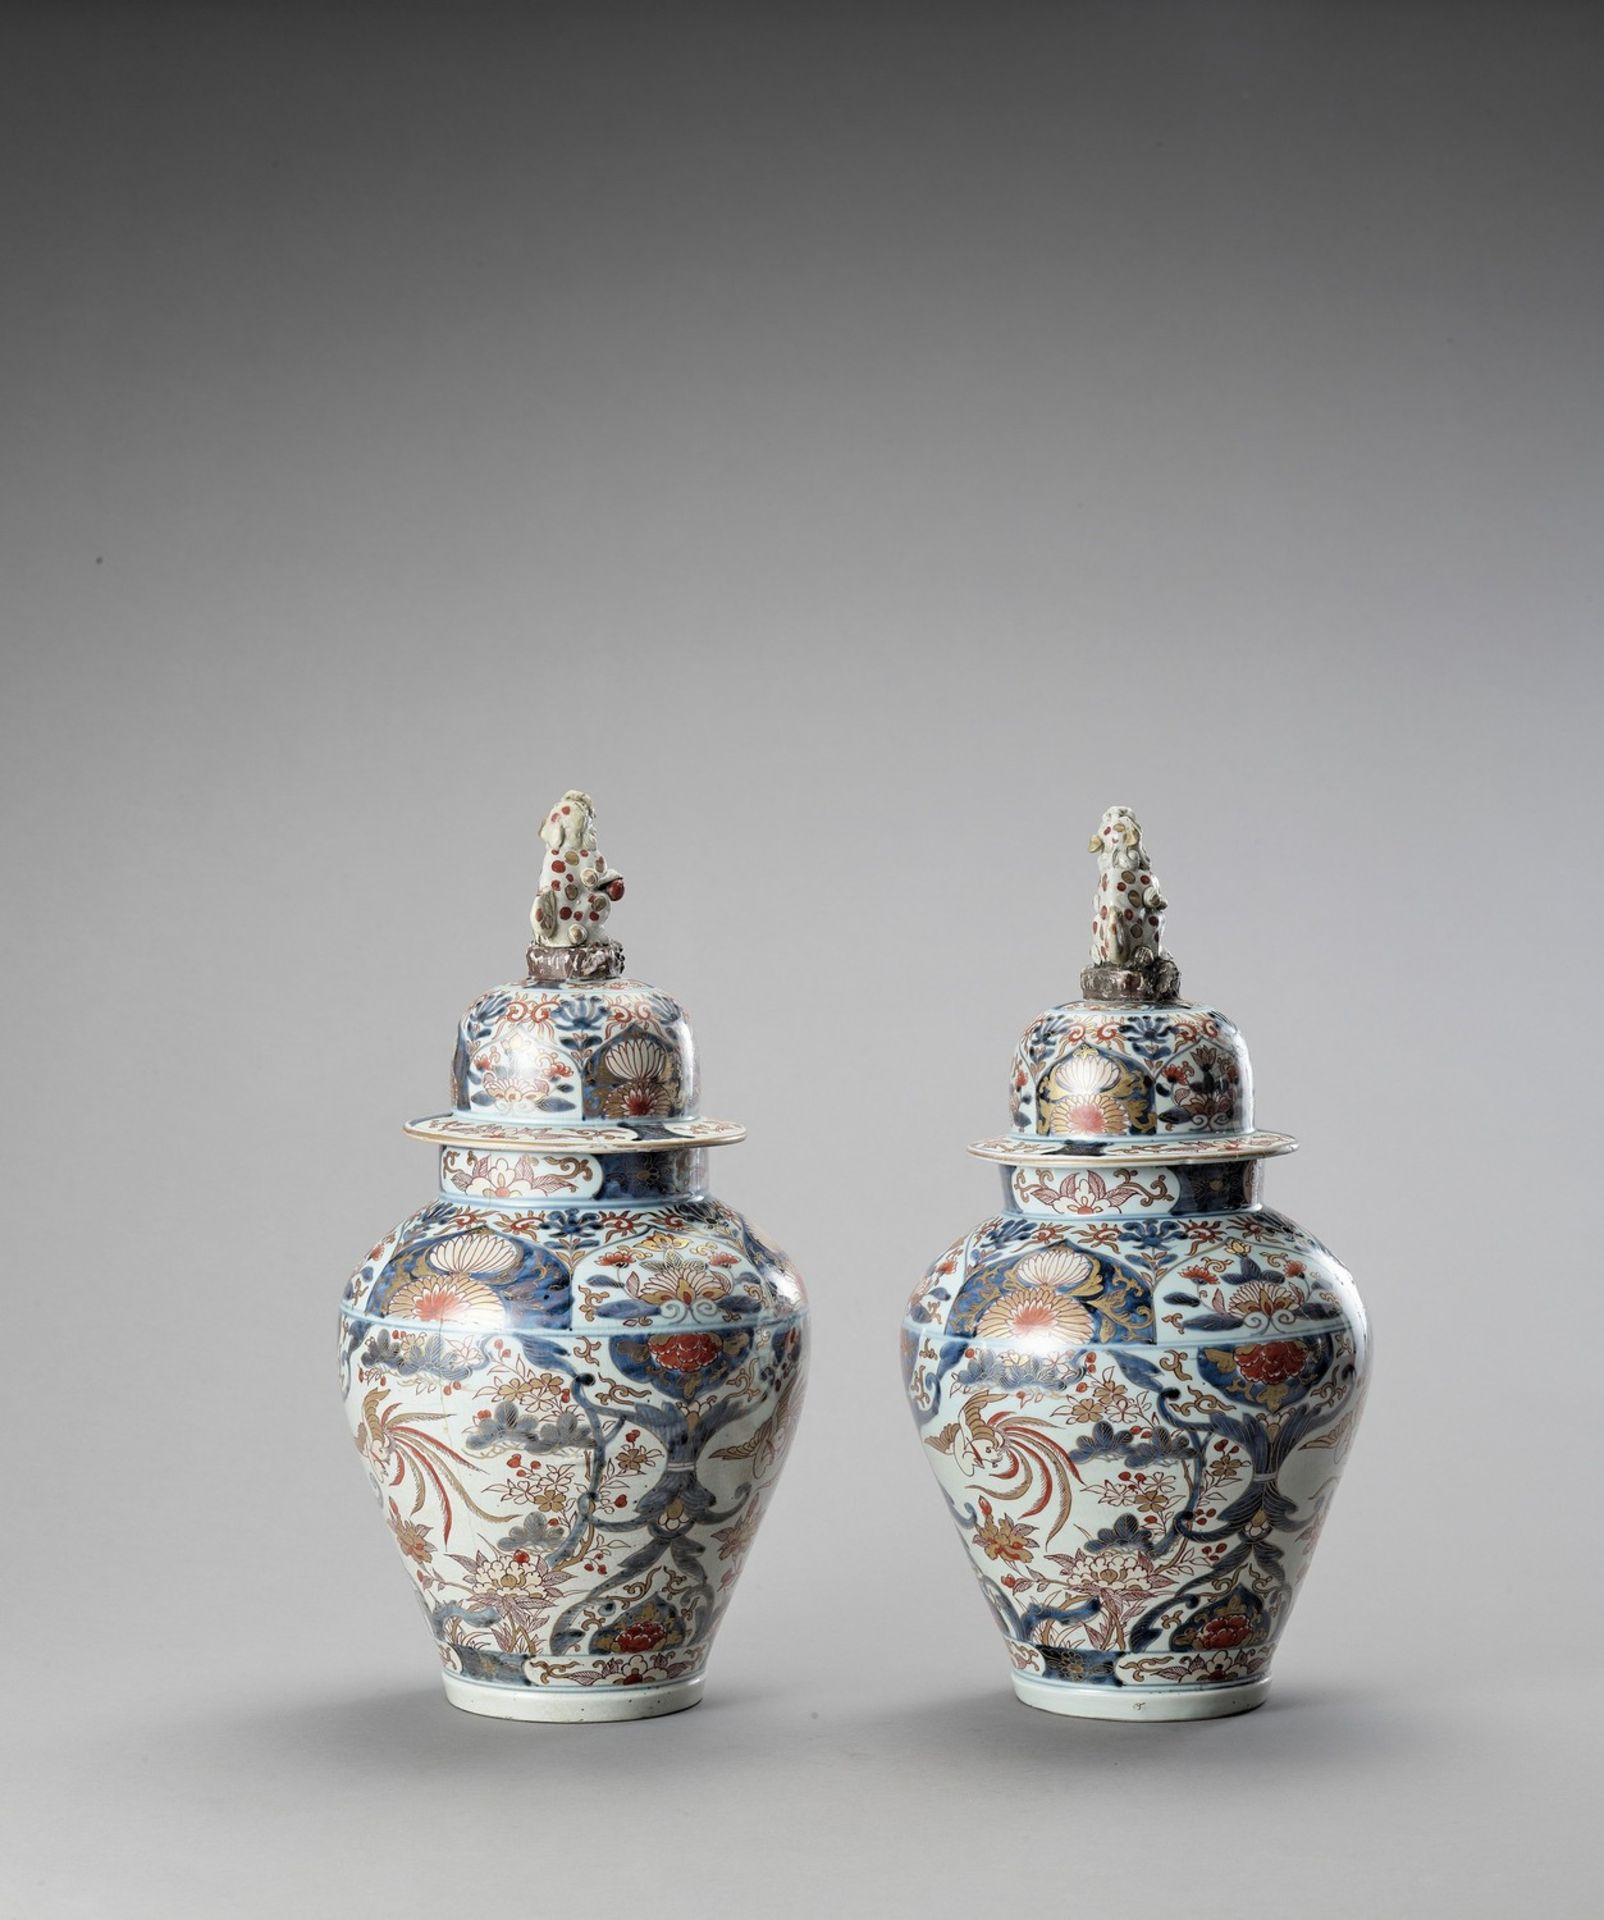 A LARGE PAIR OF IMARI PORCELAIN VASES AND COVERS - Image 4 of 6